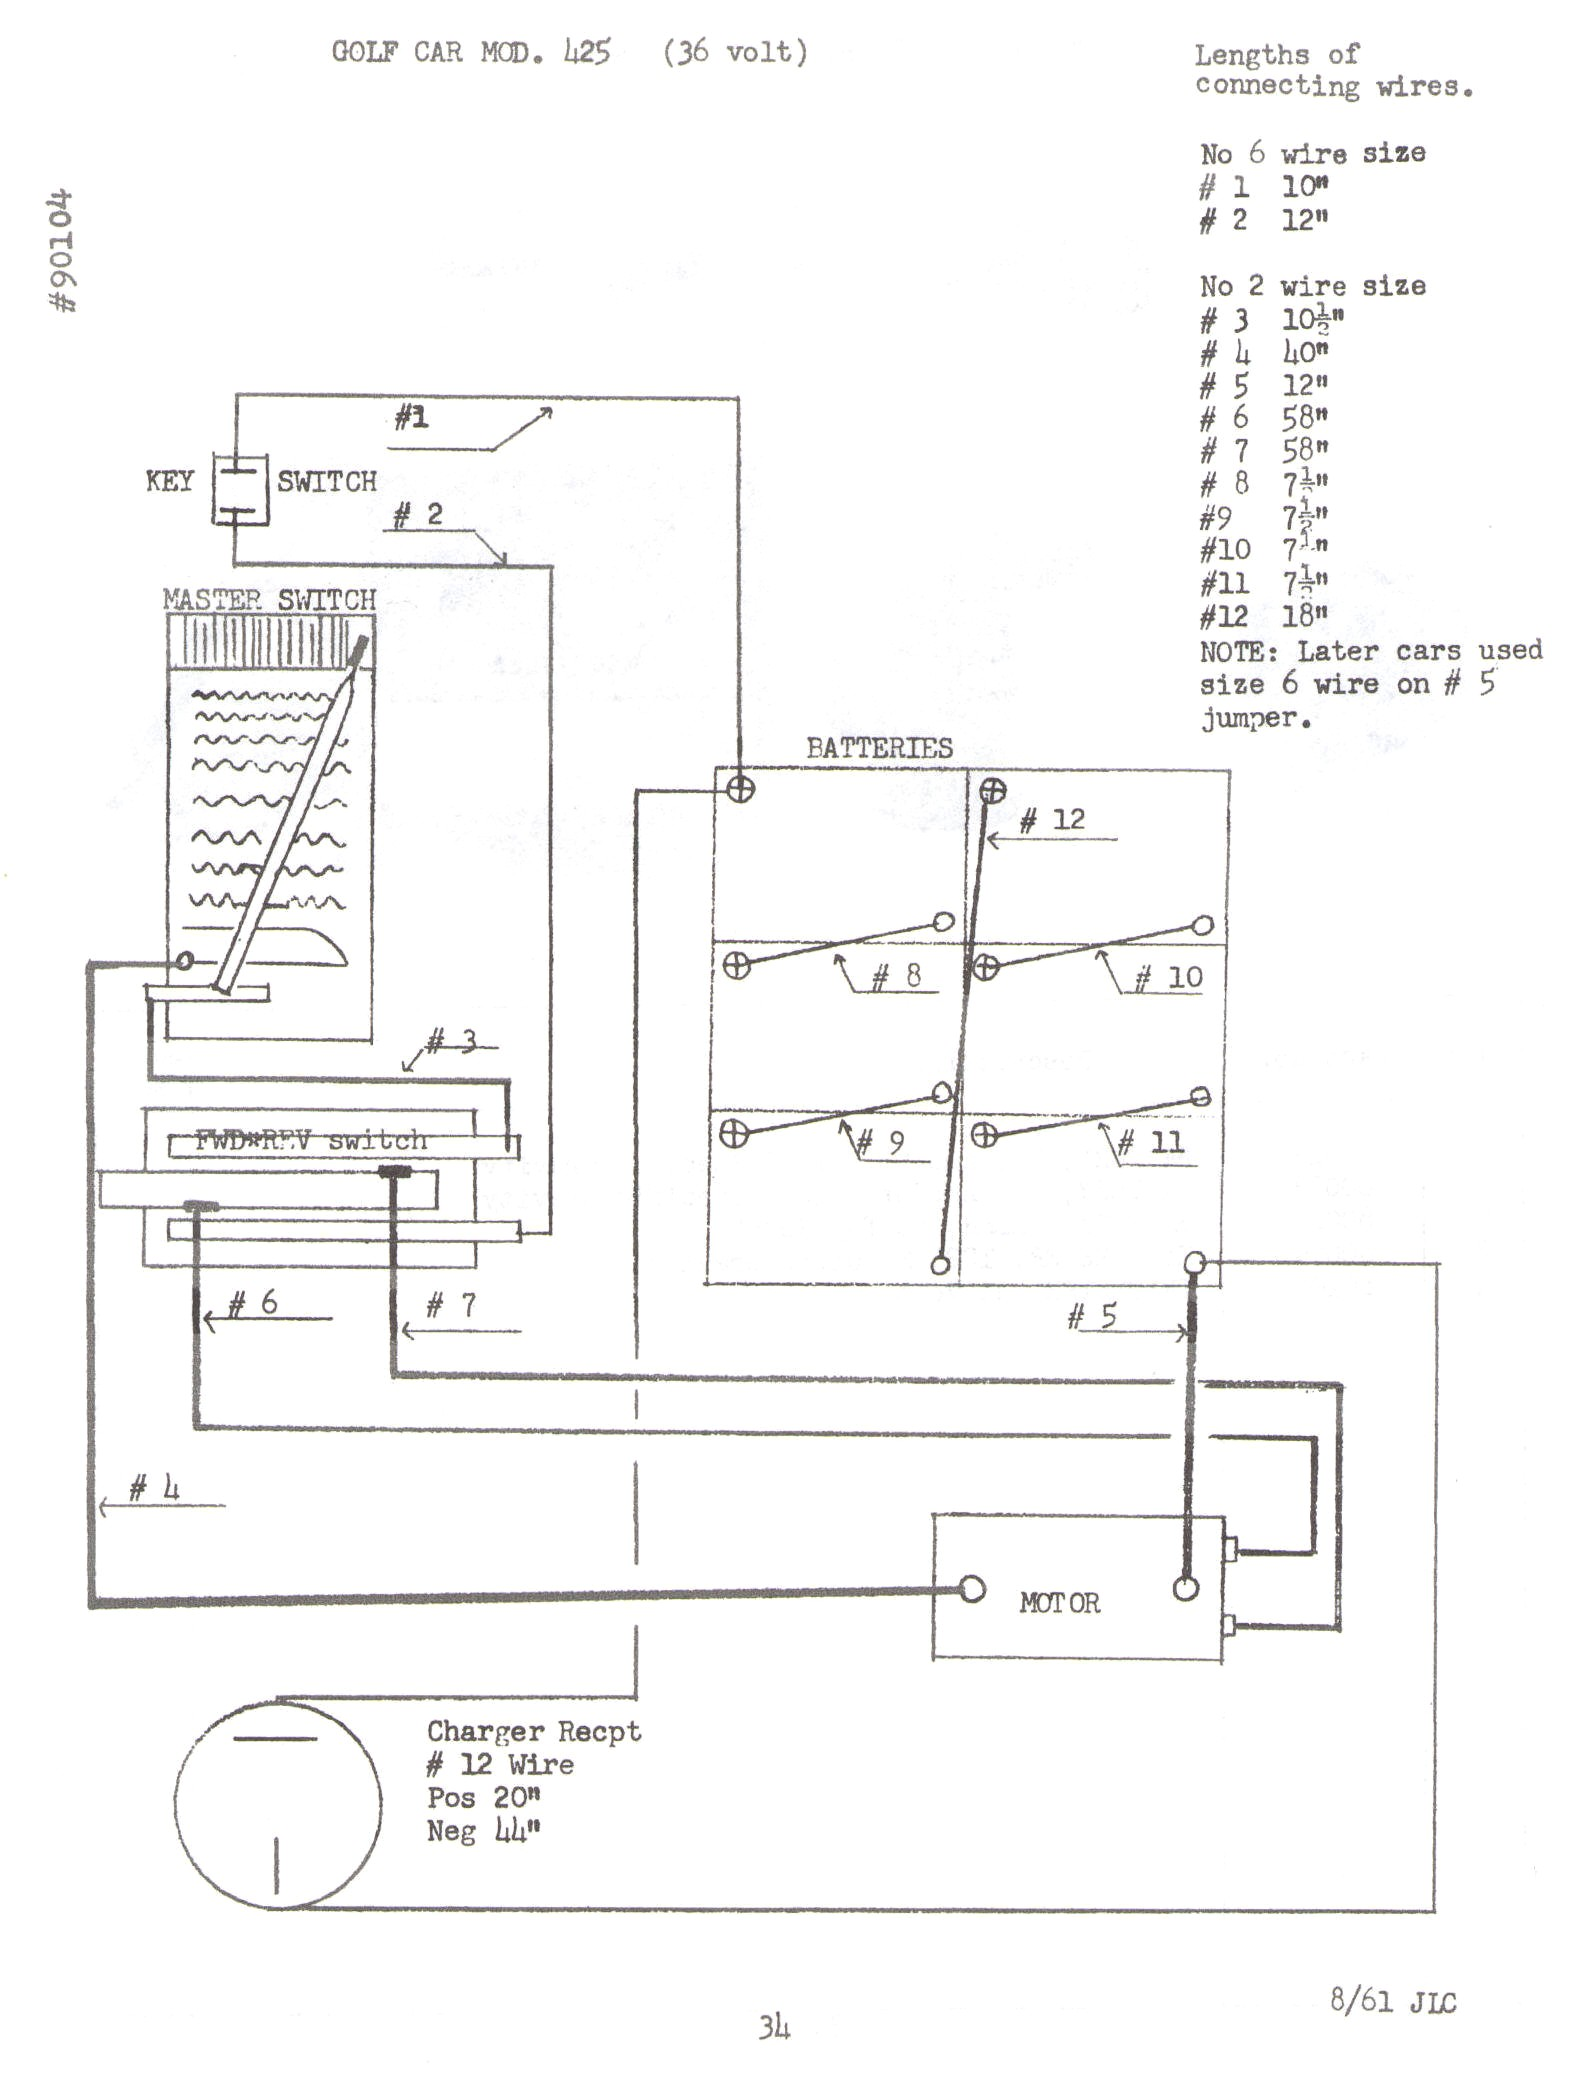 hight resolution of westinghouse golf cart wiring diagram wiring library diagram z2marketeer golf cart wiring diagram z3 wiring library